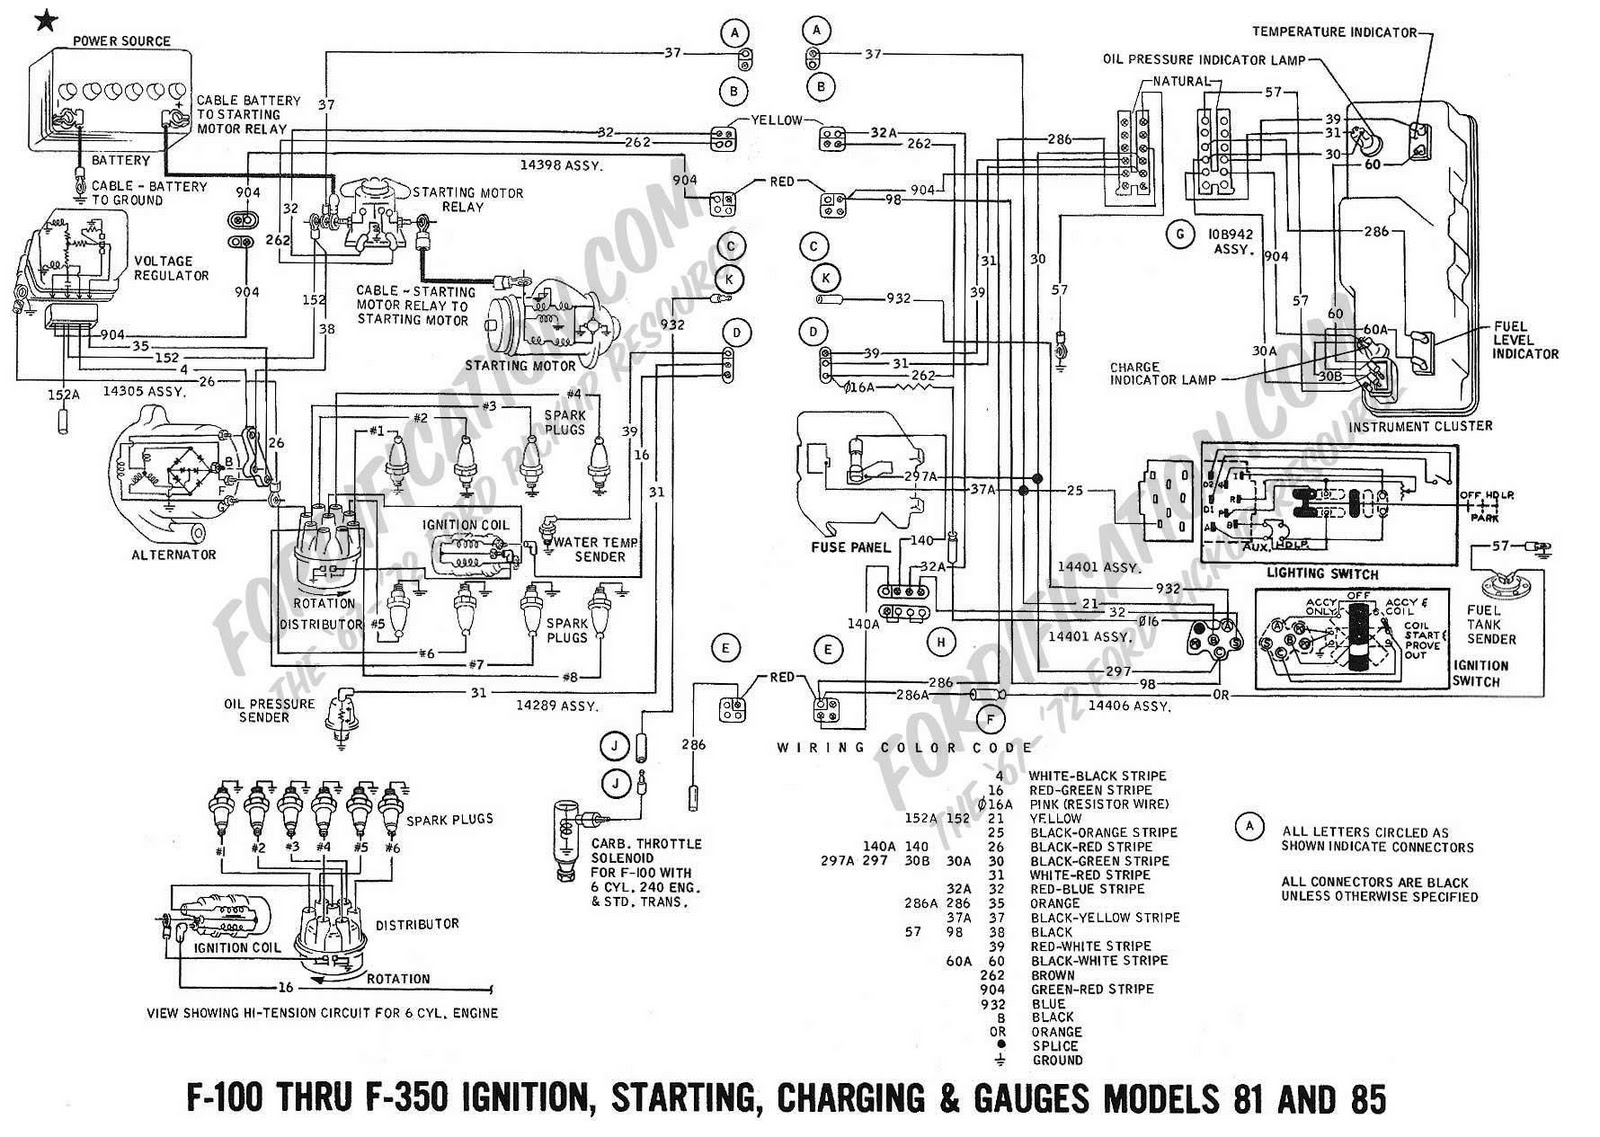 1969 ford f100 f350 ignition starting charging and 1971 camaro wiper wiring 1969 camaro wiring schematic [ 1600 x 1137 Pixel ]